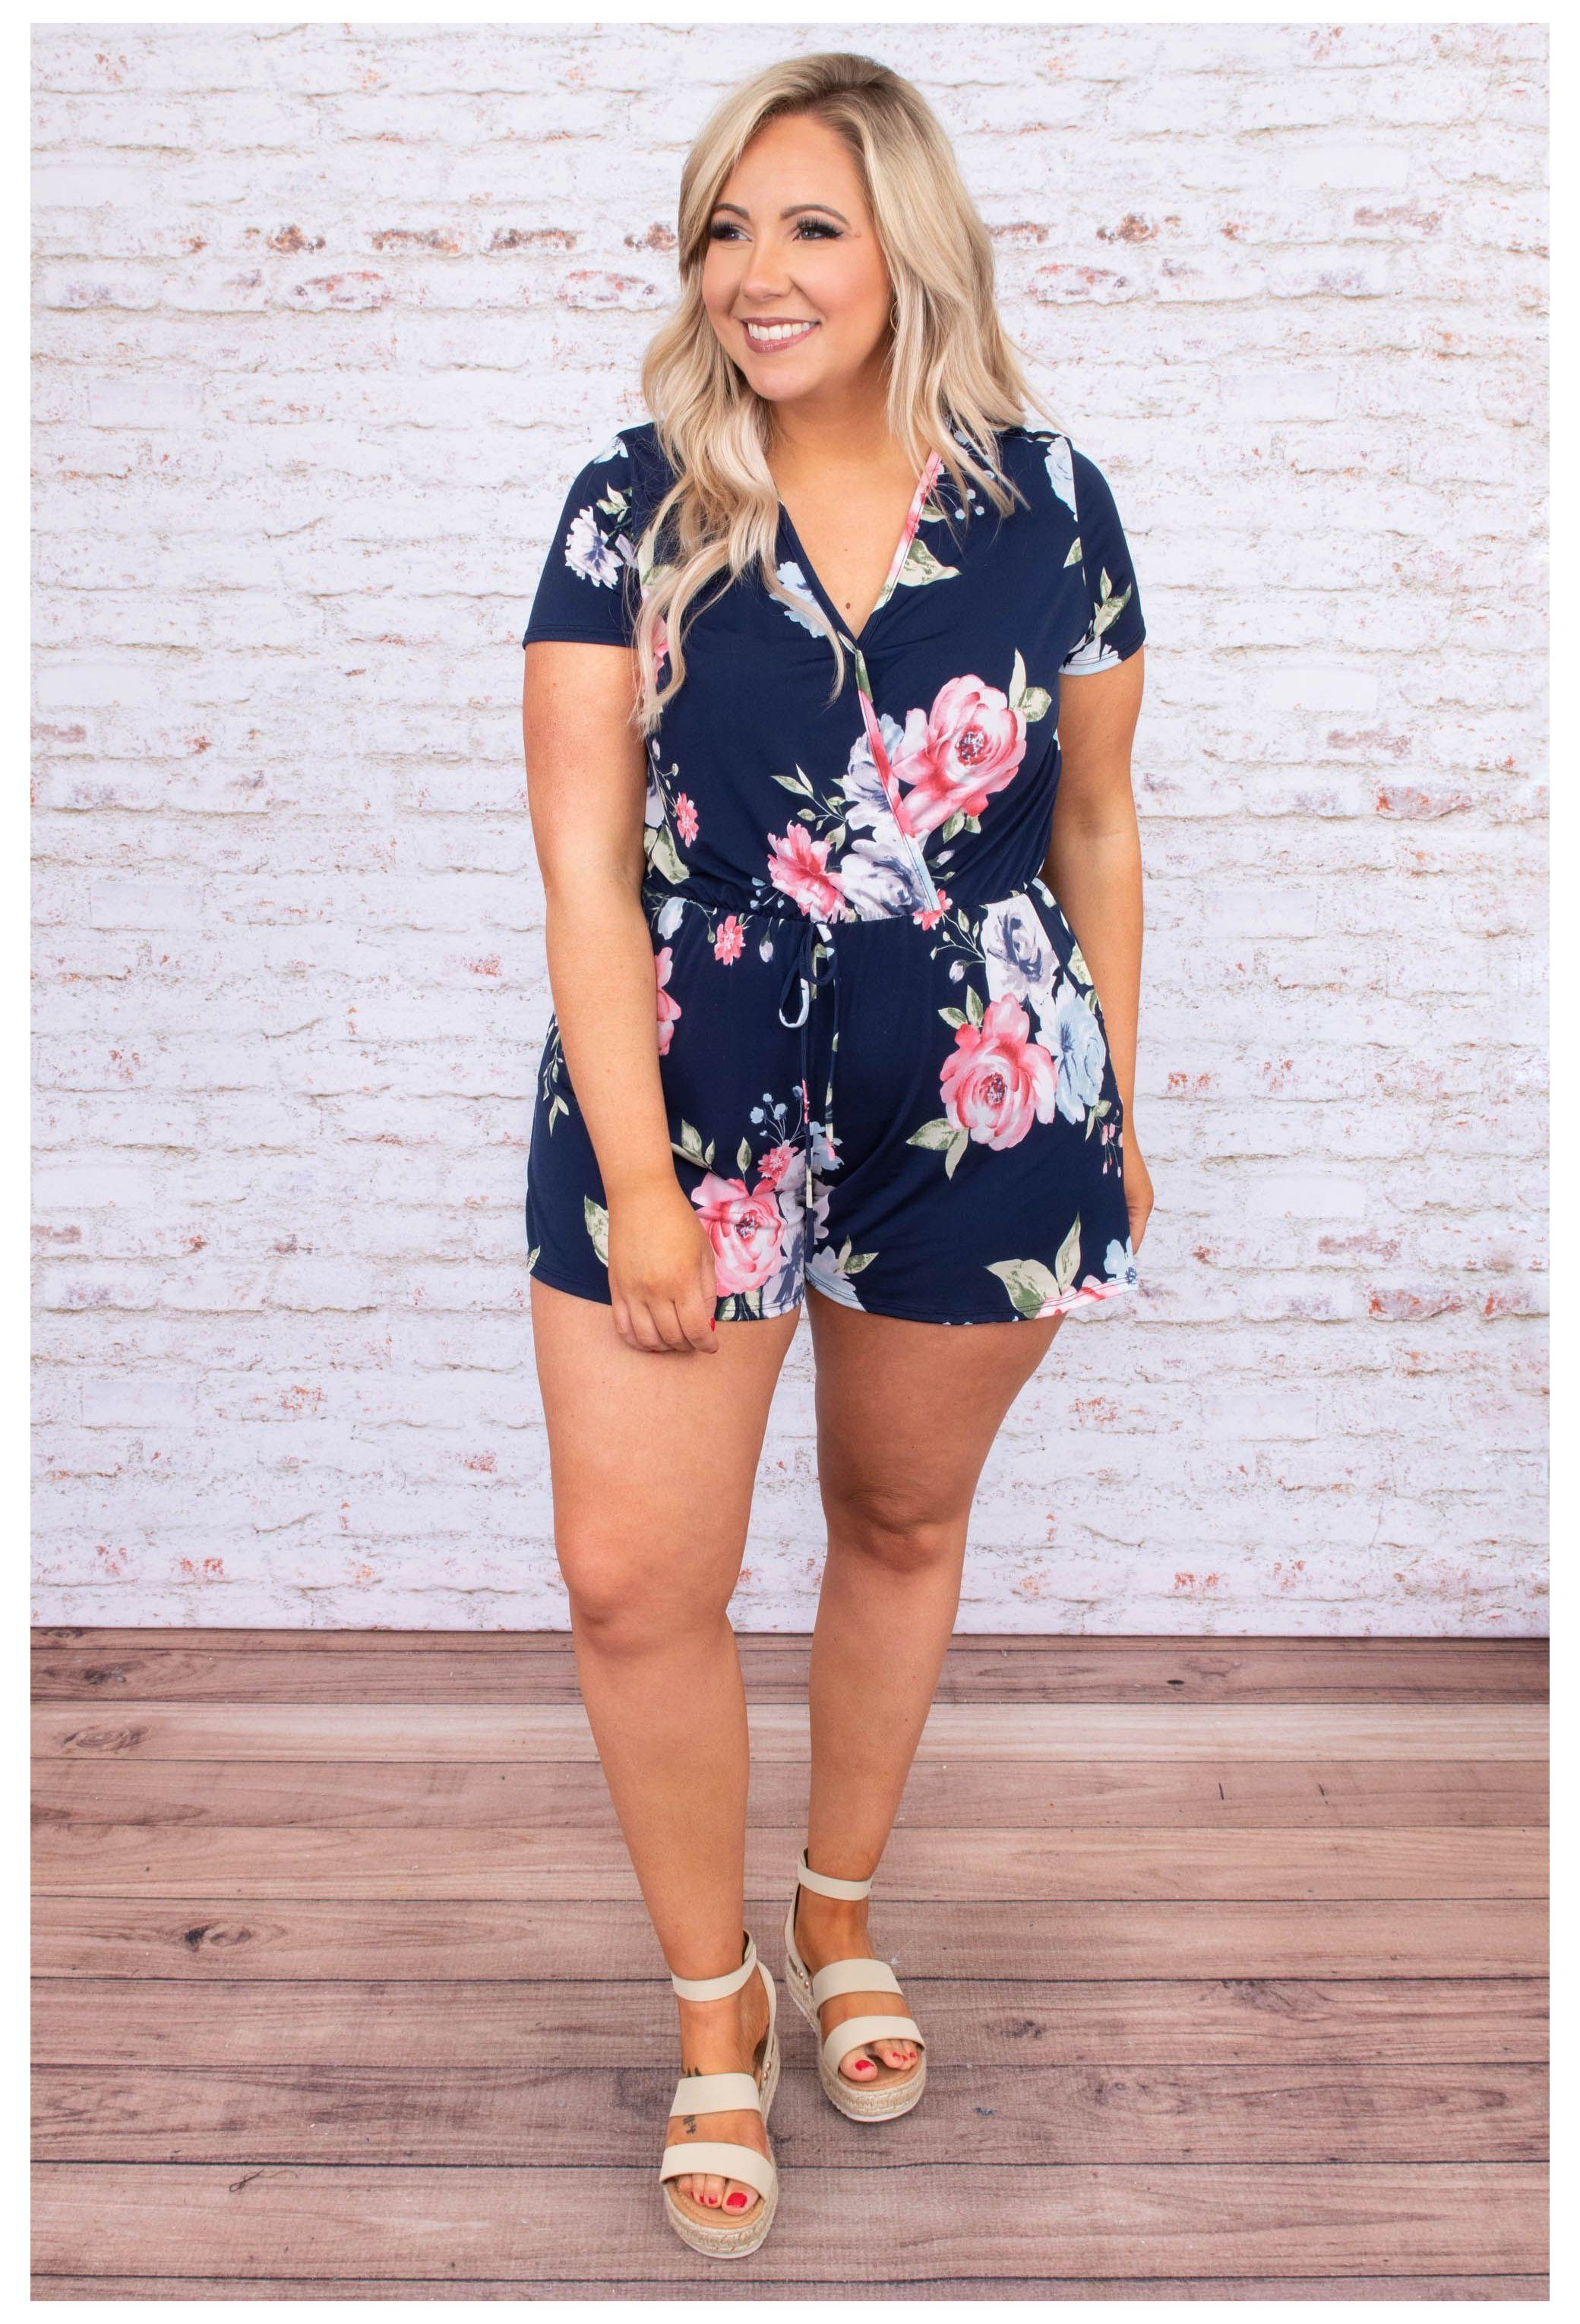 Fallen For You Romper Navy Summer Romper Outfit Plus Size Summerromperoutfitp In 2021 Beach Outfits Women Plus Size Summer Romper Outfit Plus Size Beach Outfits [ 3060 x 2080 Pixel ]